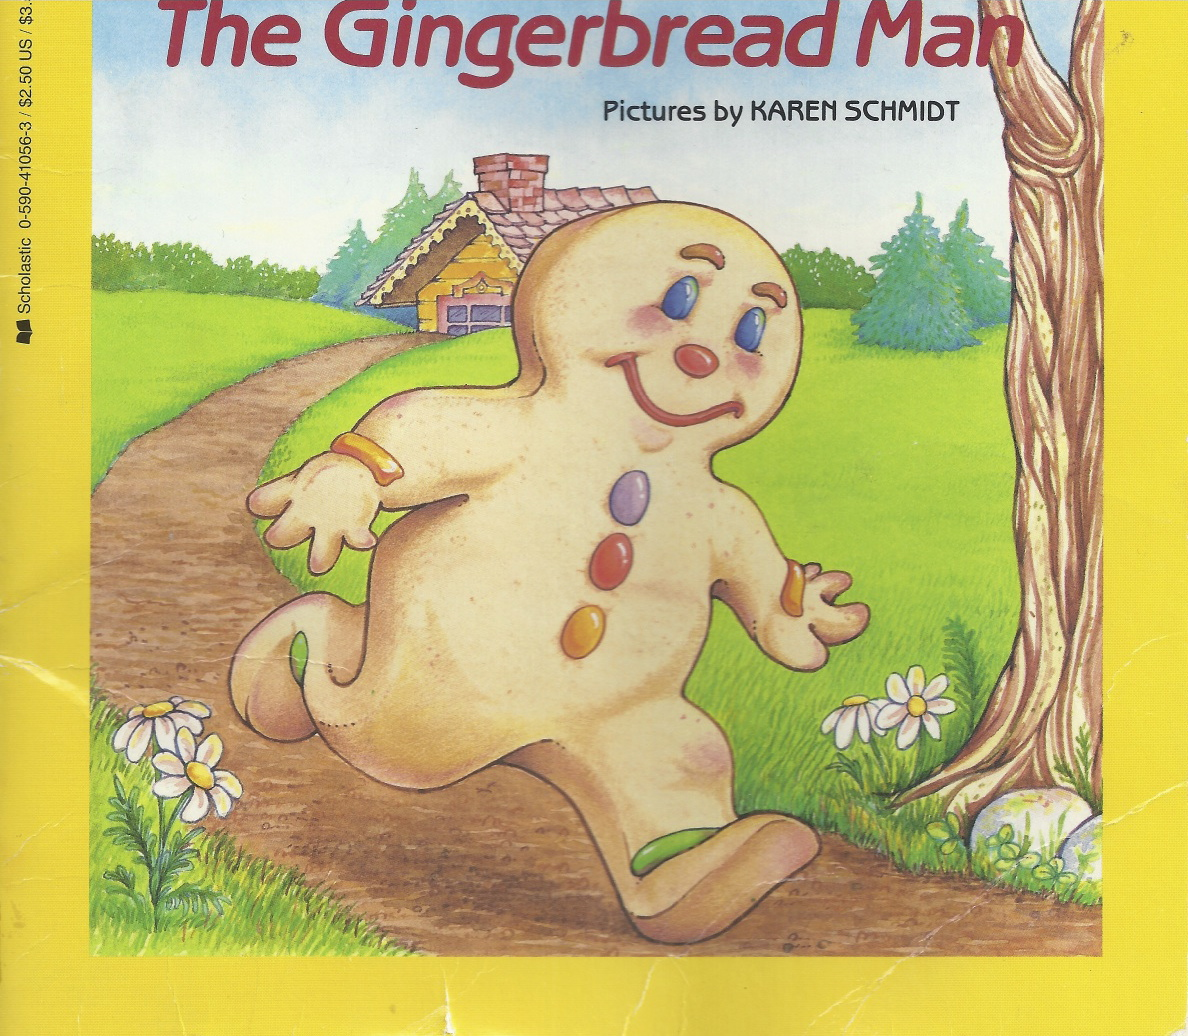 The Gingerbread Man And So Many Take Off Stories Like Baby